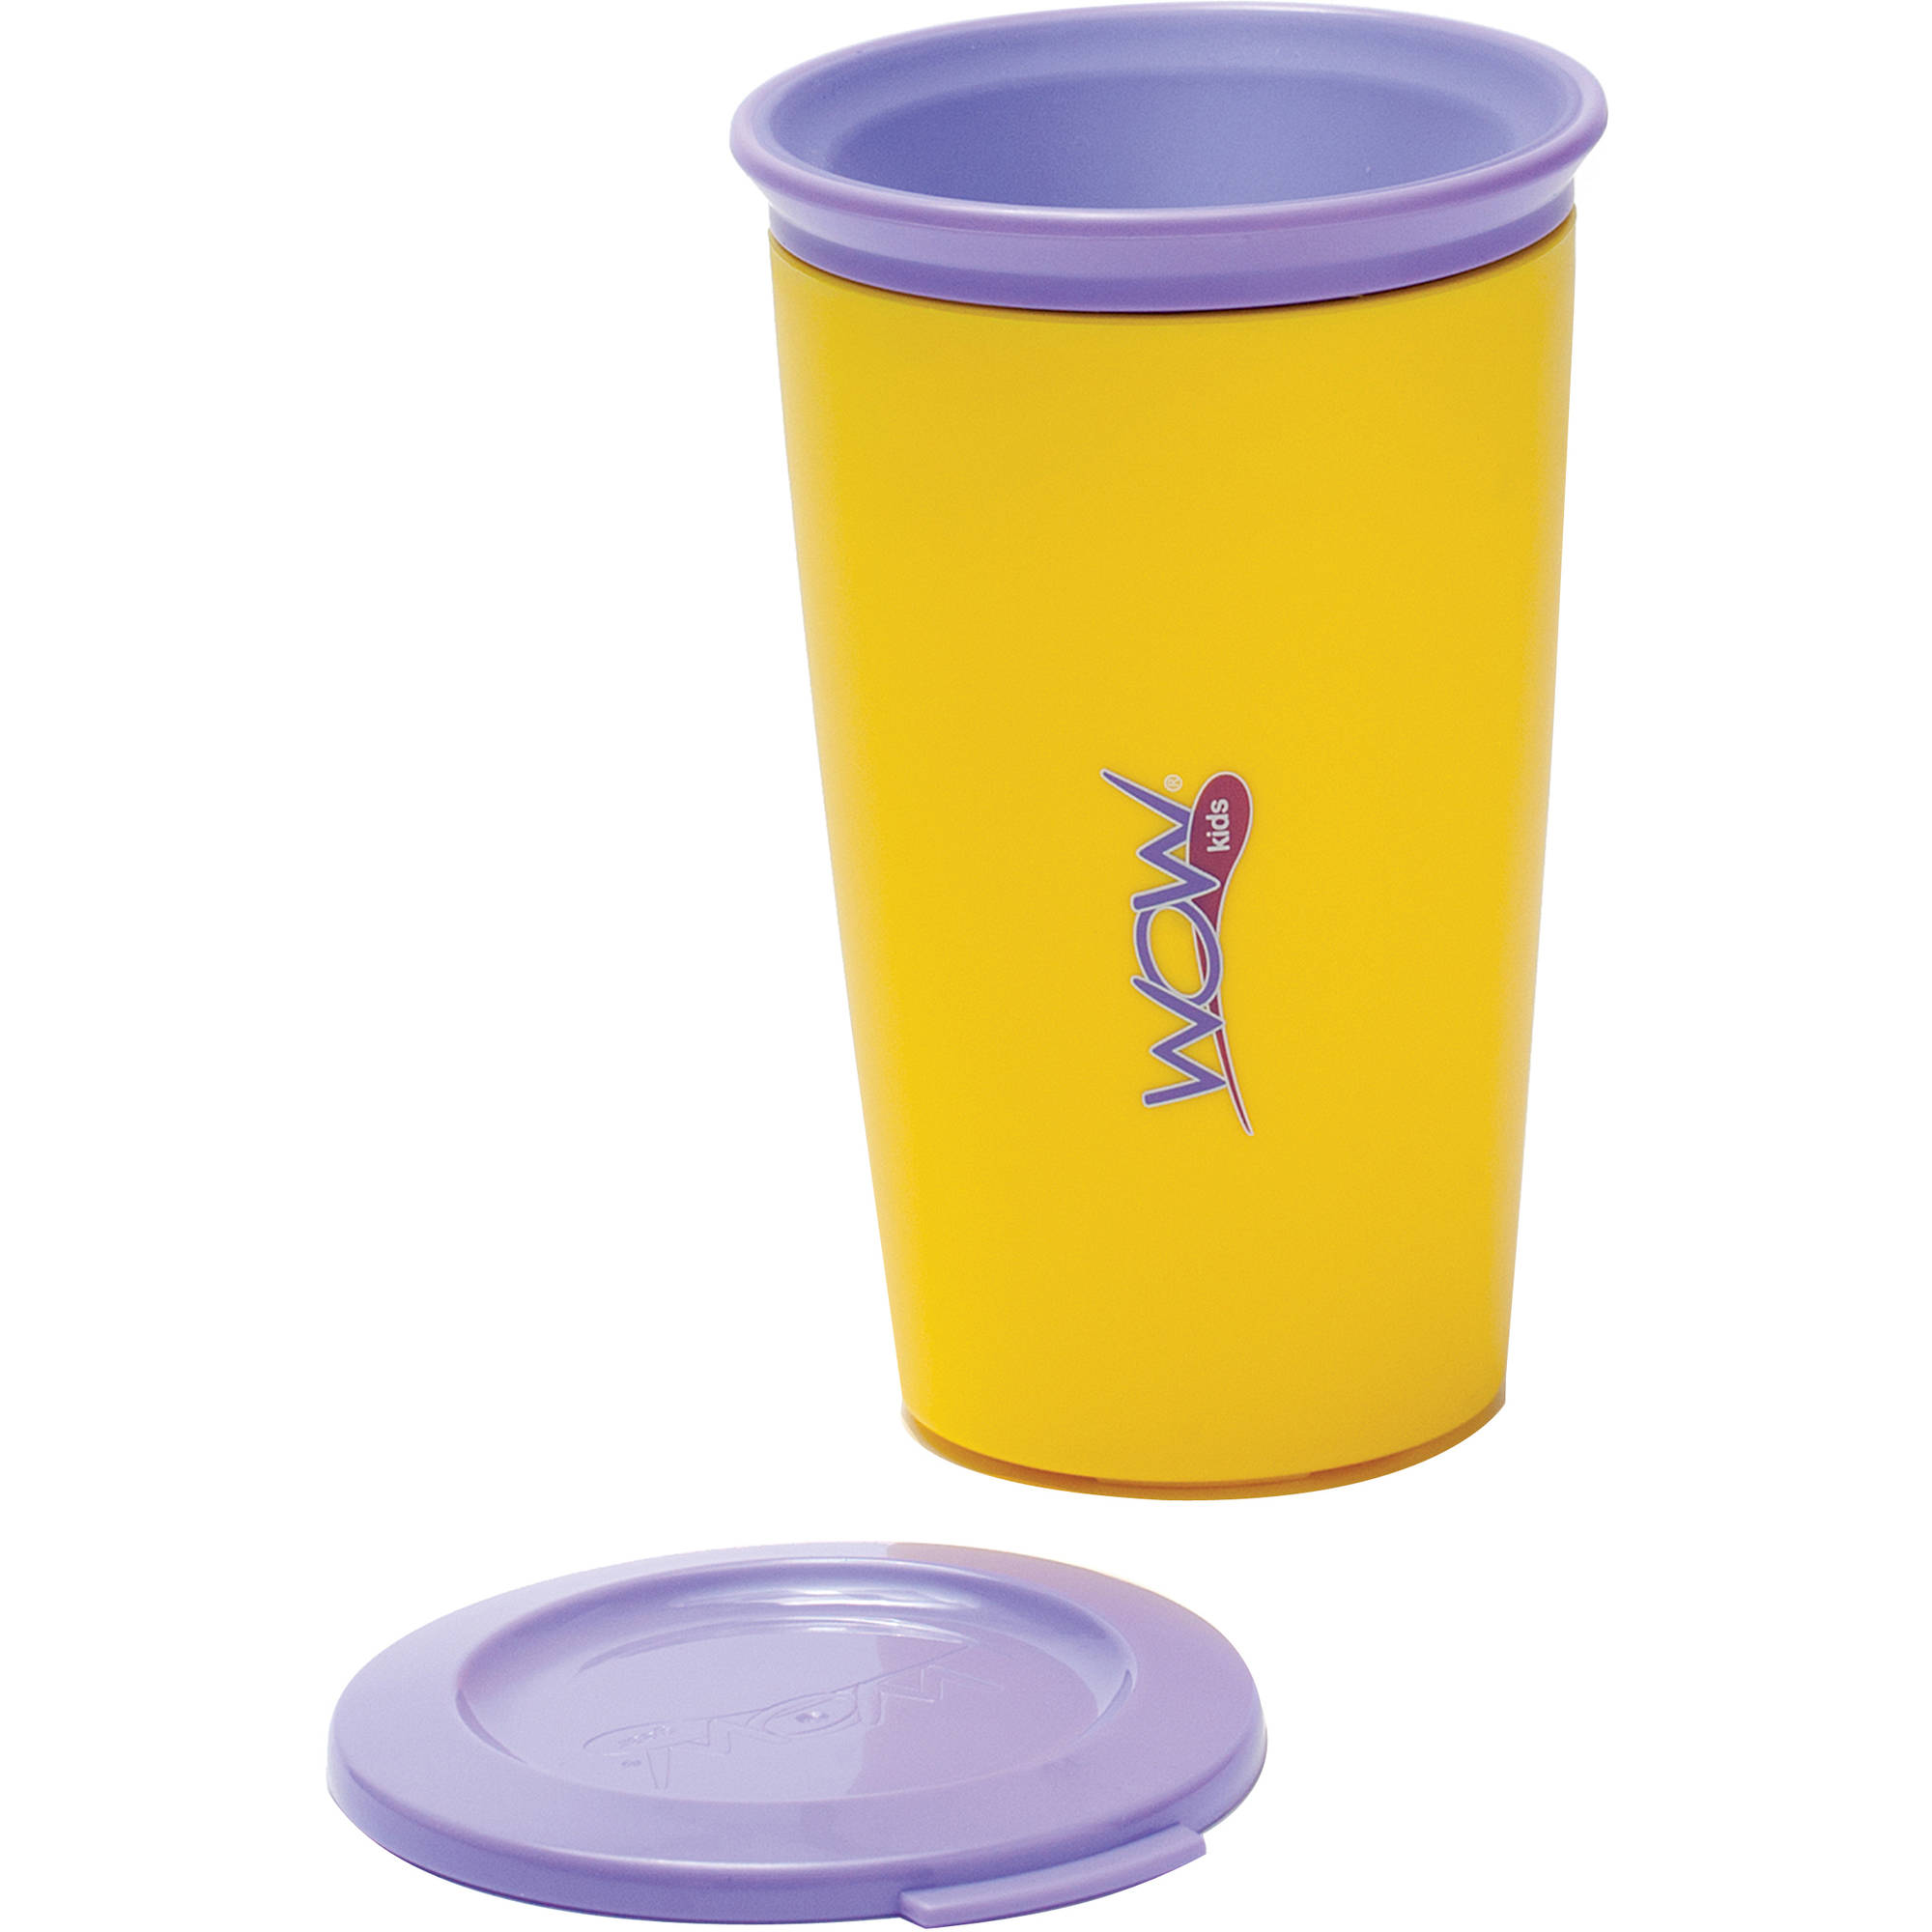 WOW Gear WOW Cup for Kids 360 Spill-Free Cup, Yellow Purple by Wow Gear